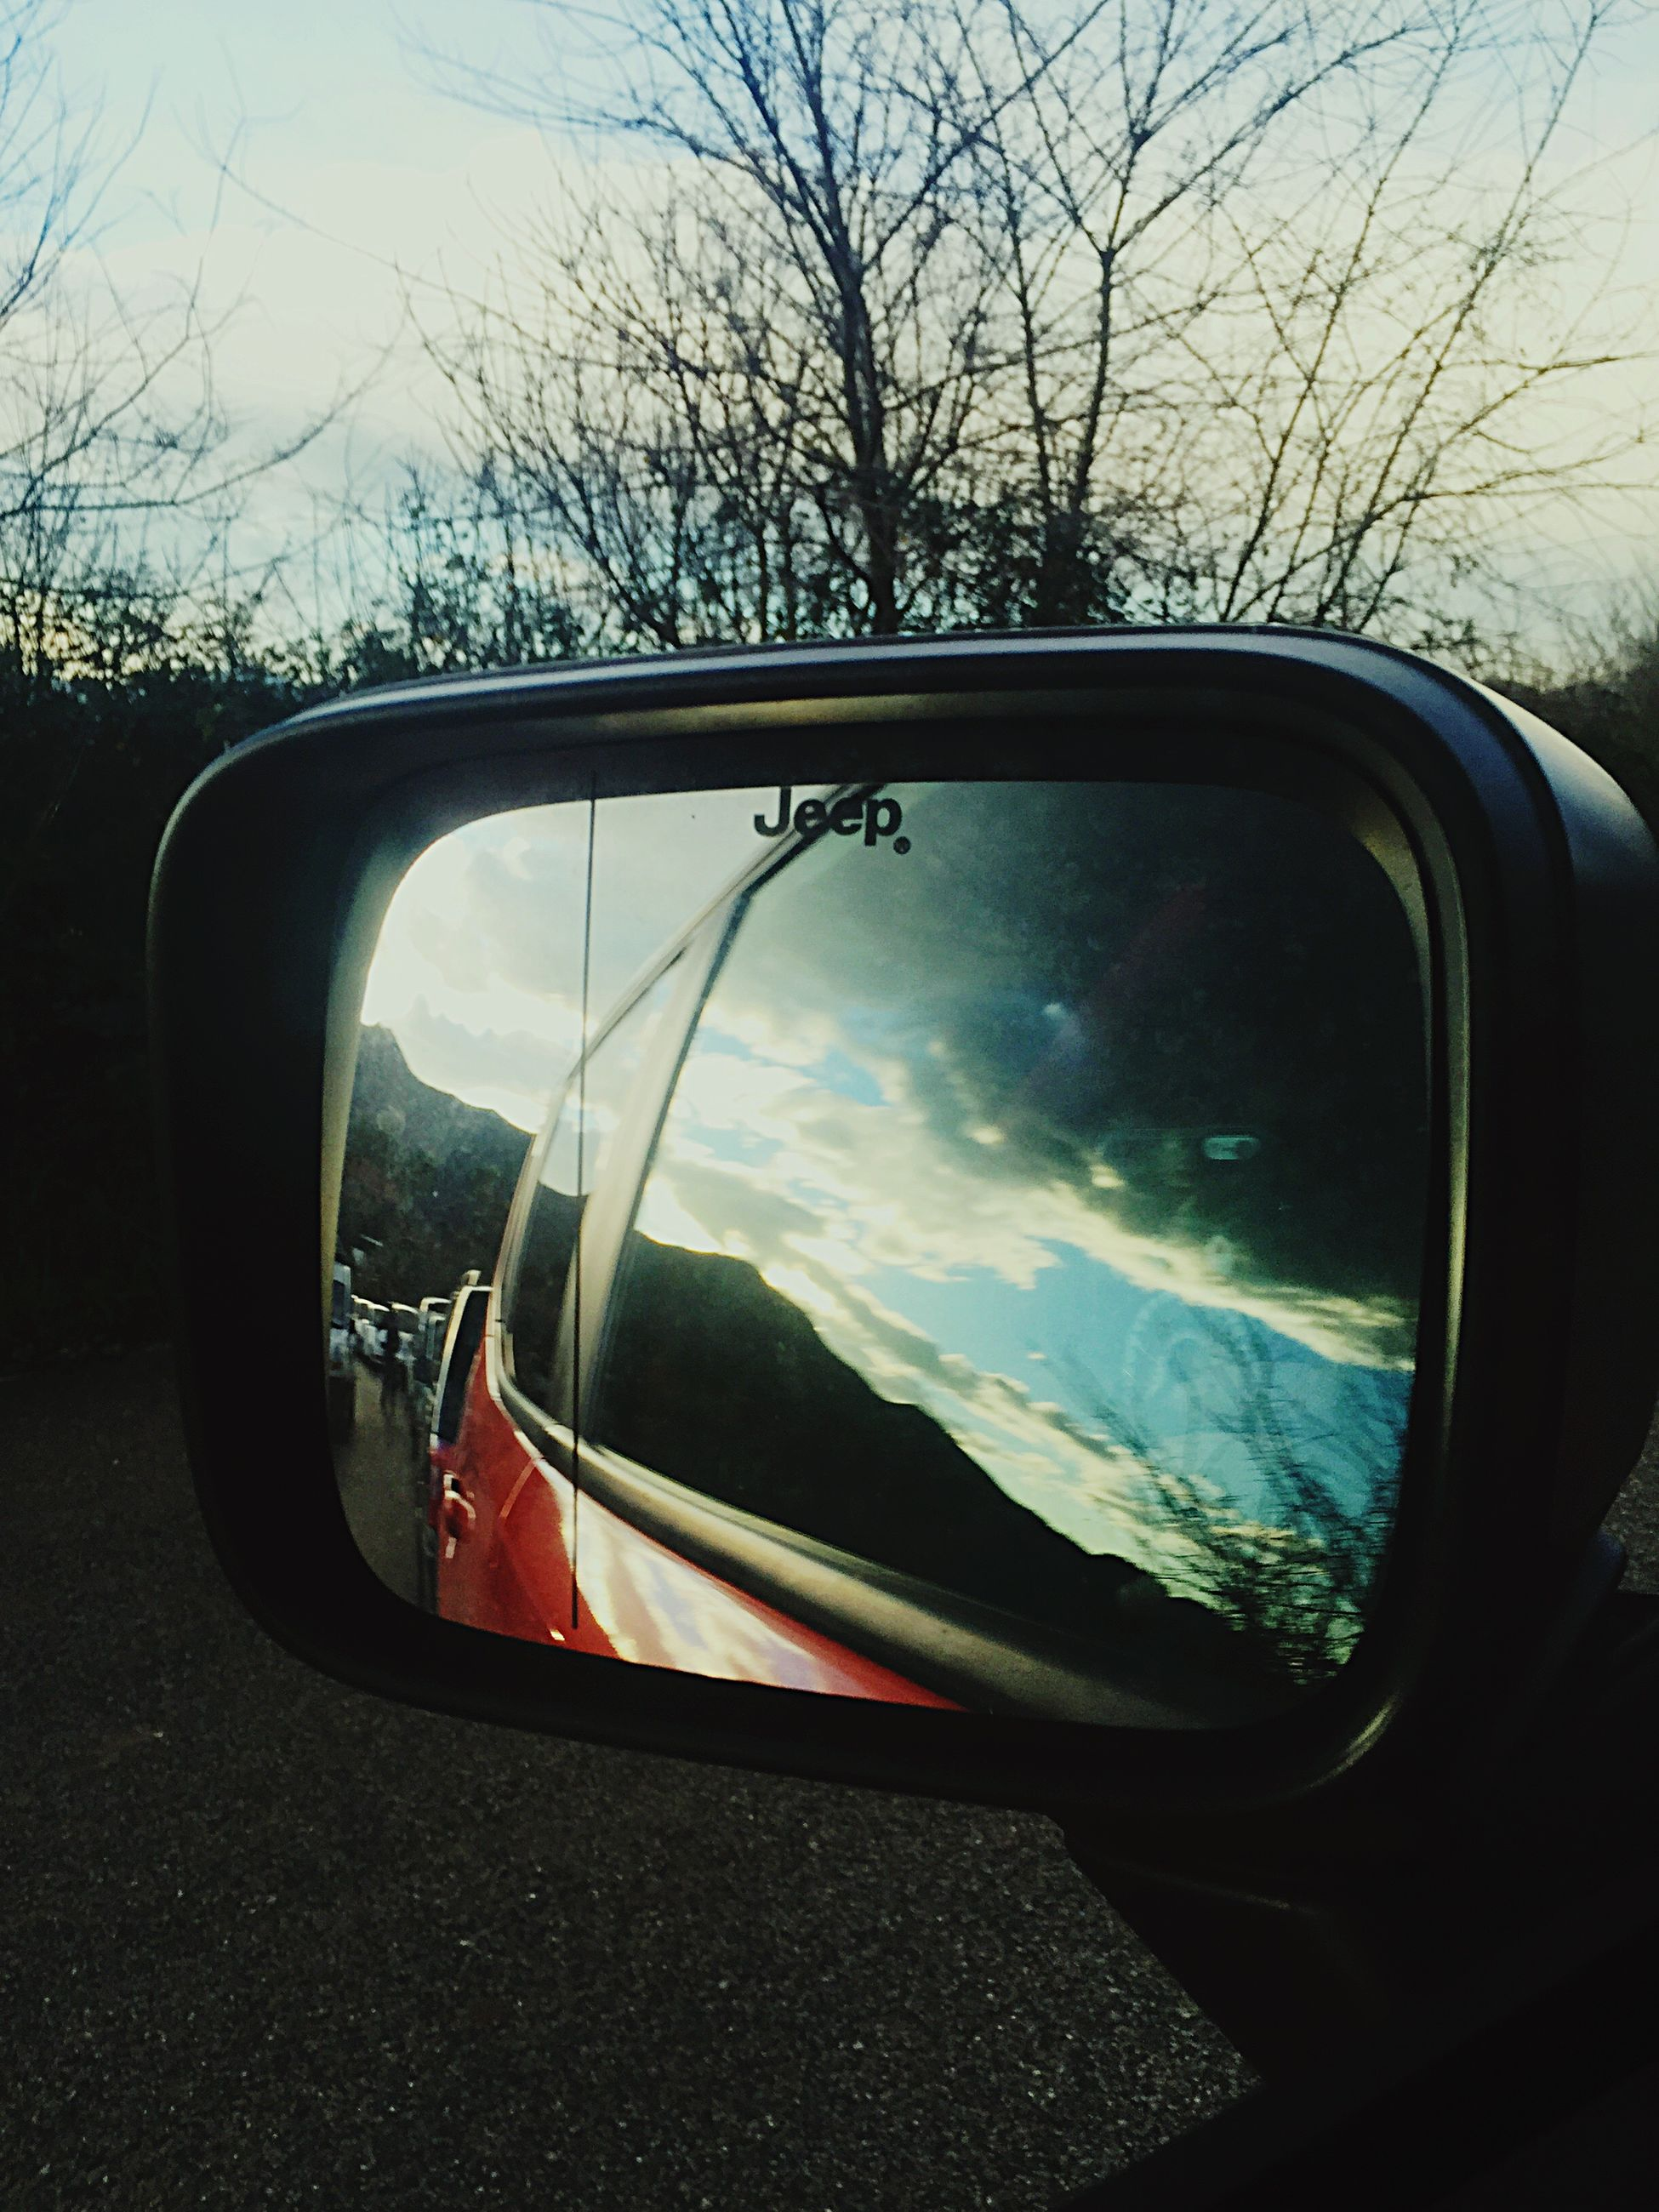 transportation, mode of transport, car, land vehicle, side-view mirror, vehicle interior, reflection, car interior, glass - material, travel, transparent, part of, windshield, tree, sky, road, cropped, window, bare tree, on the move